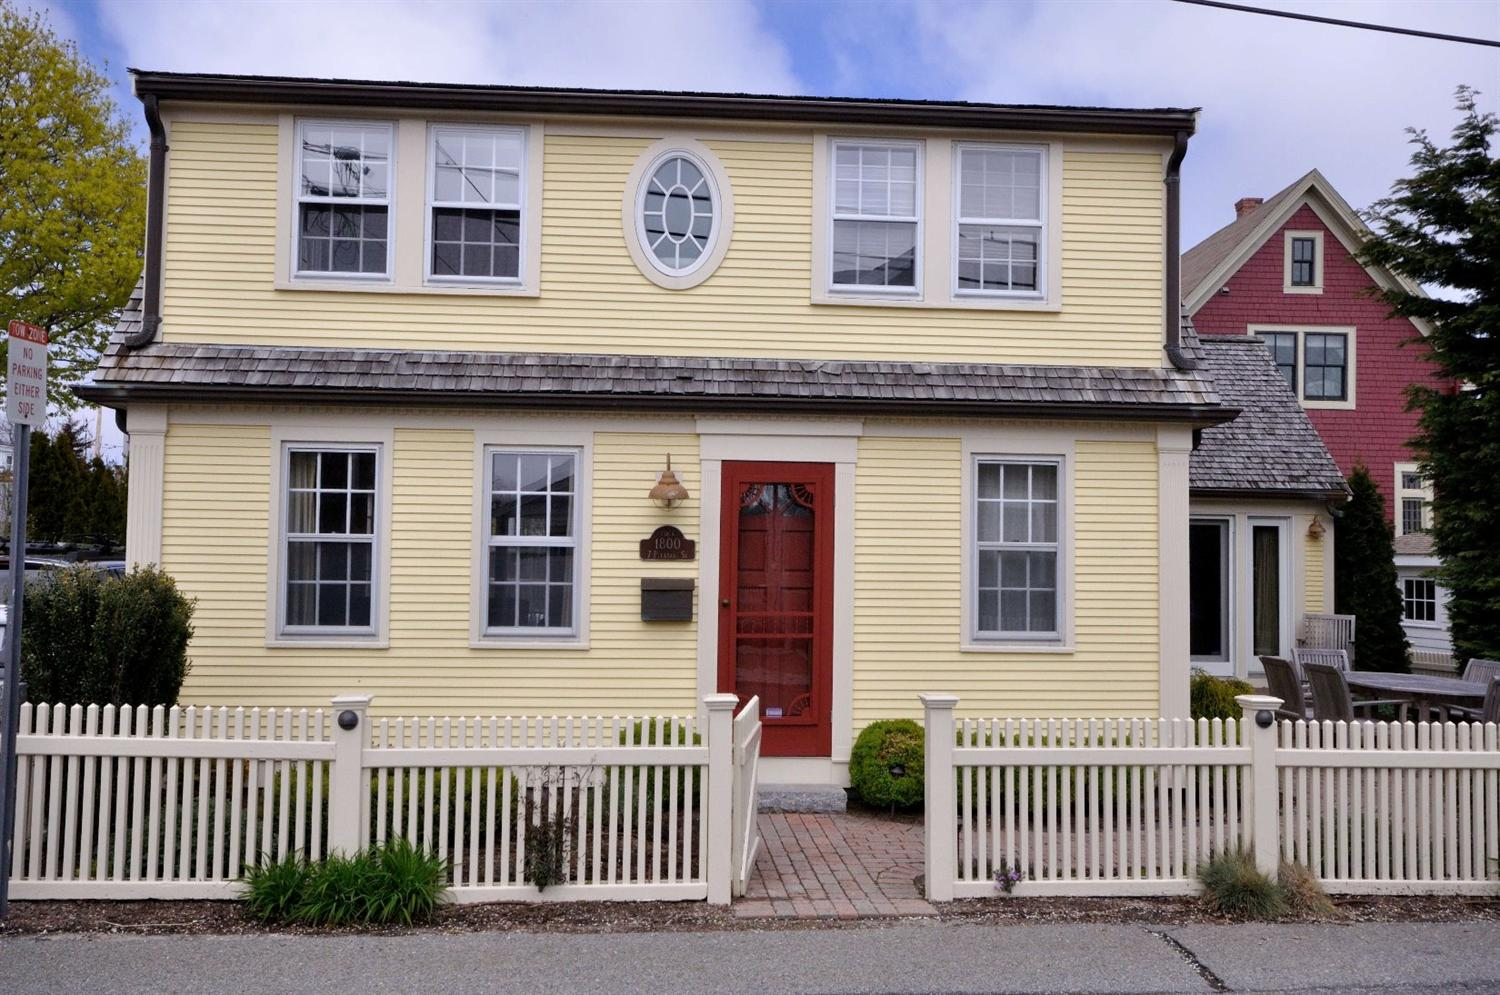 PROVINCETOWN SINGLE FAMILY HOME PRICES - ACE Appraisals of ...